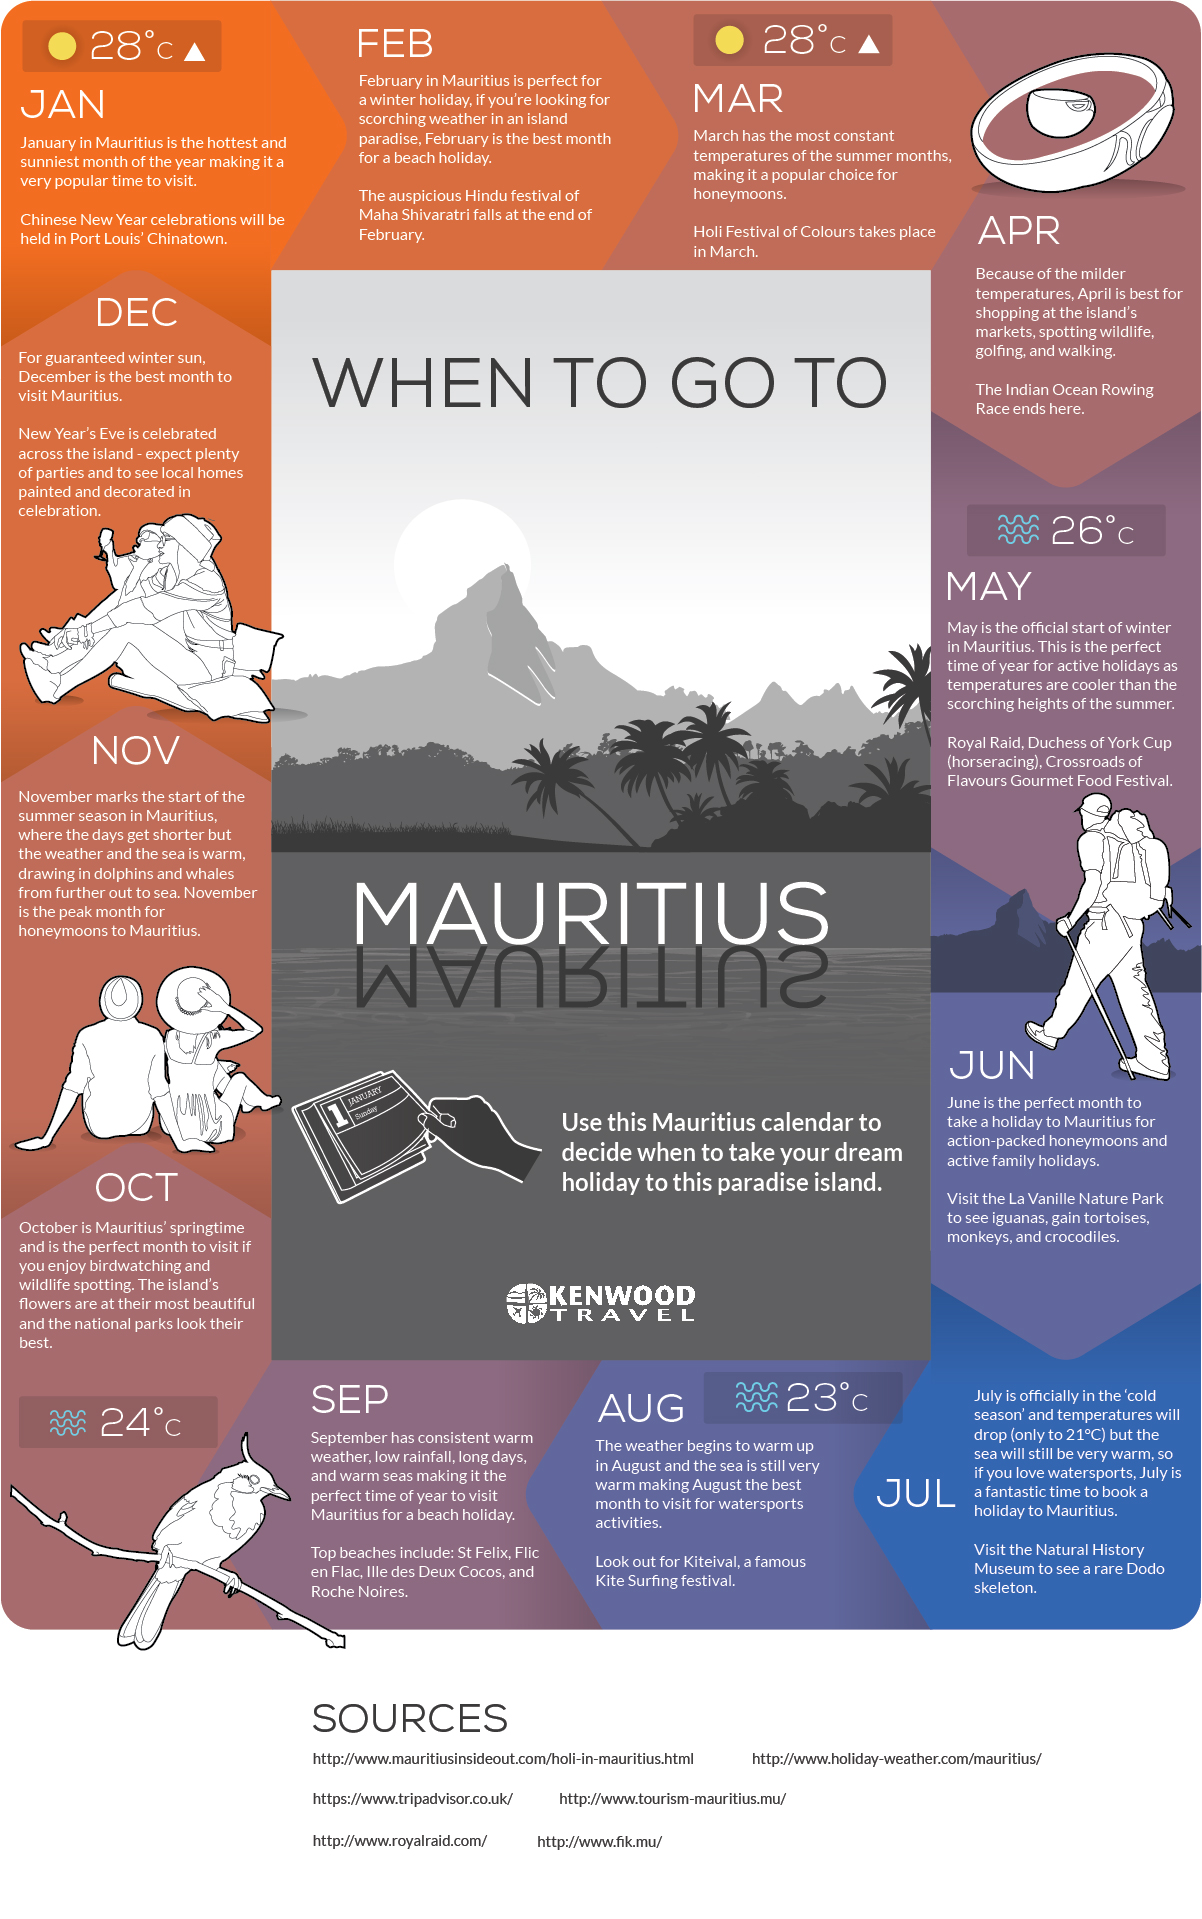 When to go to Mauritius Infographic